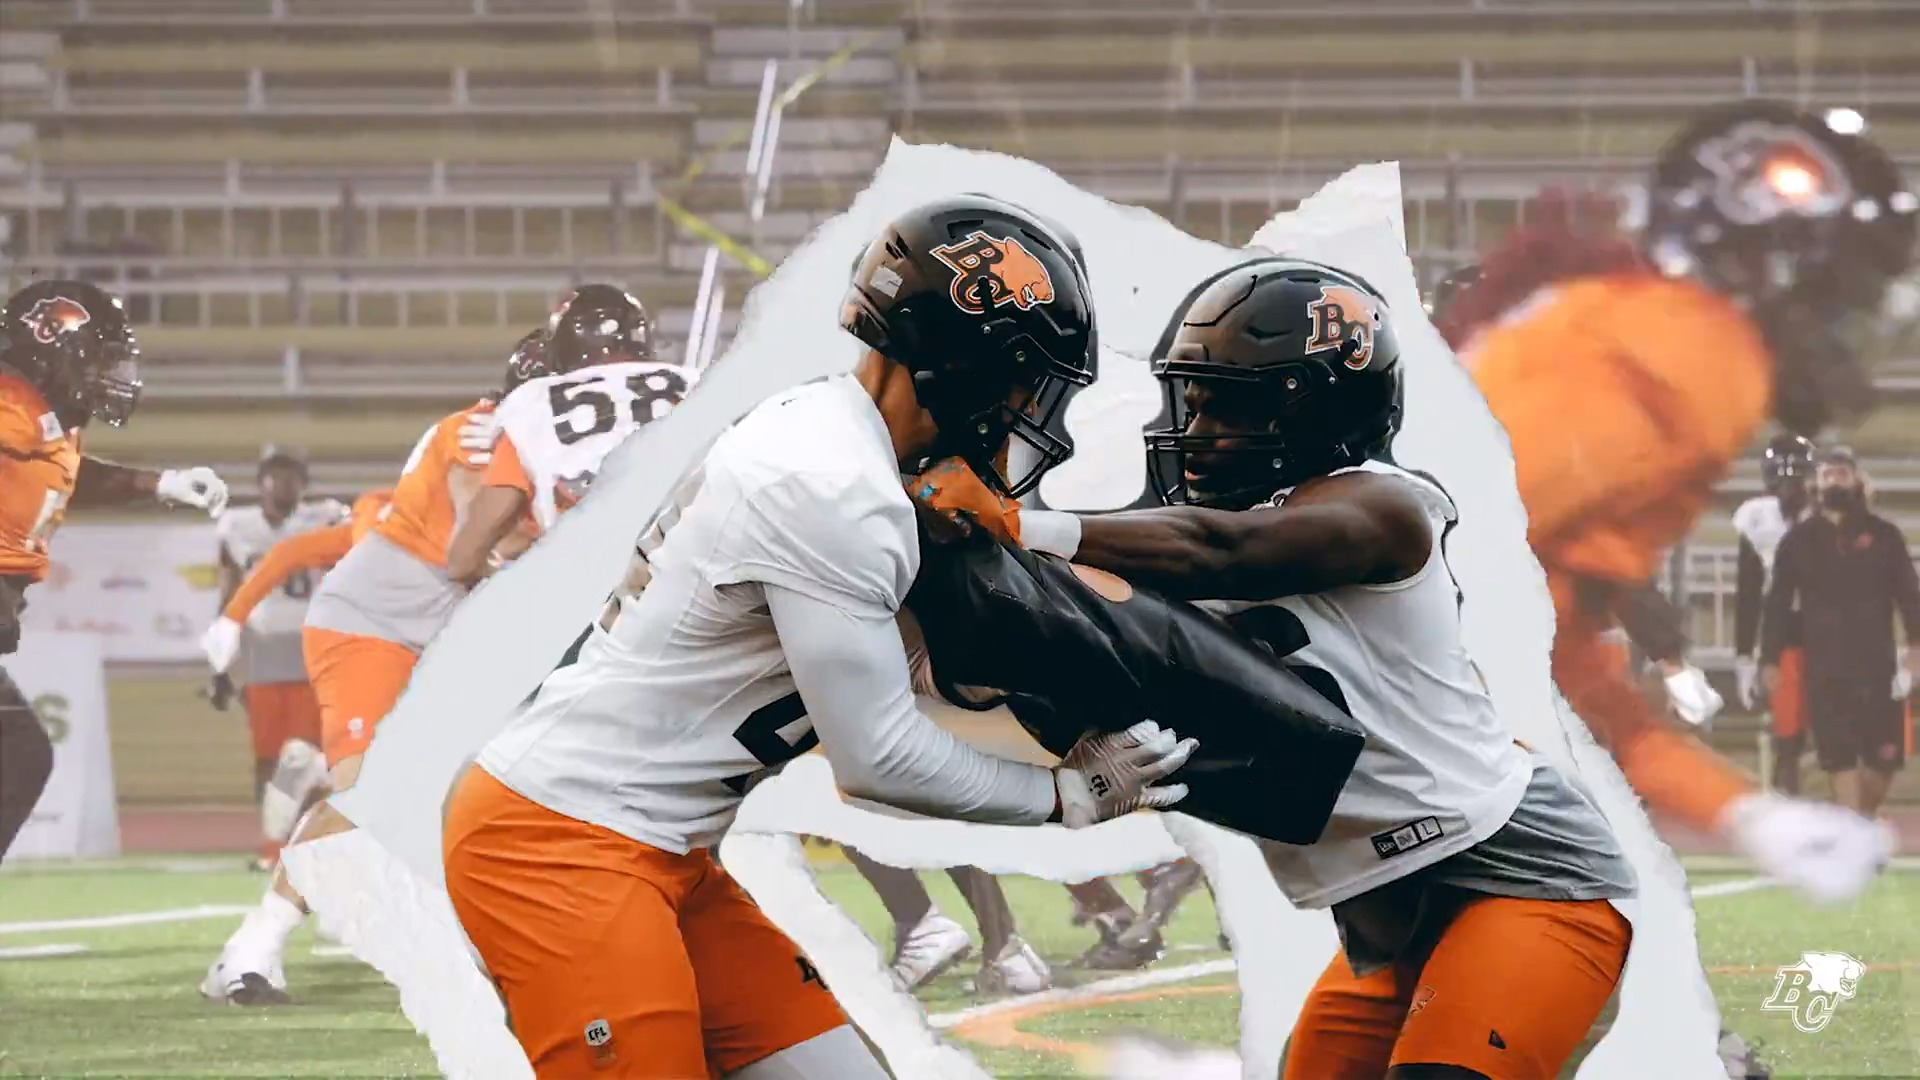 BC Lions Football Is Back!